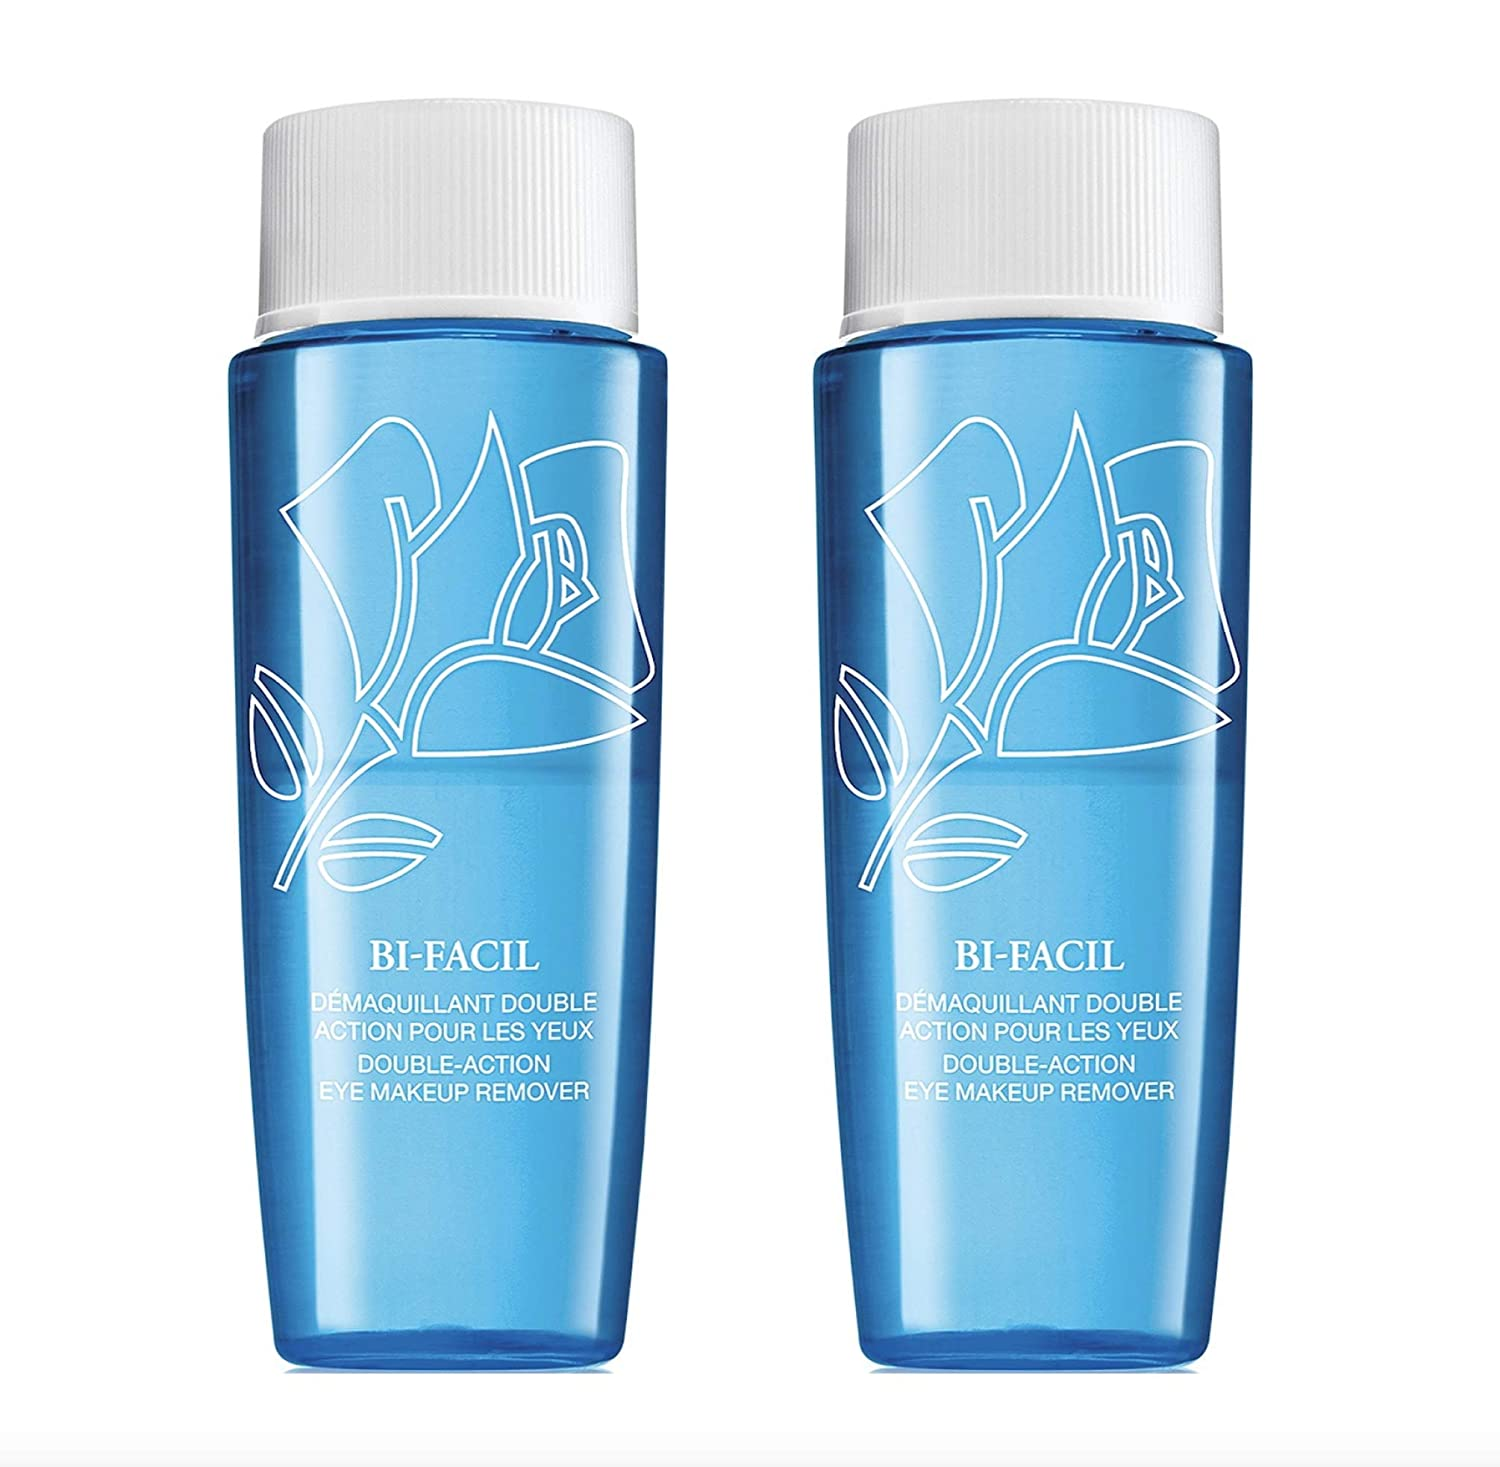 Bi-Facil Double Action Eye Makeup Remover 1.7 FL. OZ. Each (Lot of 2) by Lanc0me : Beauty & Personal Care